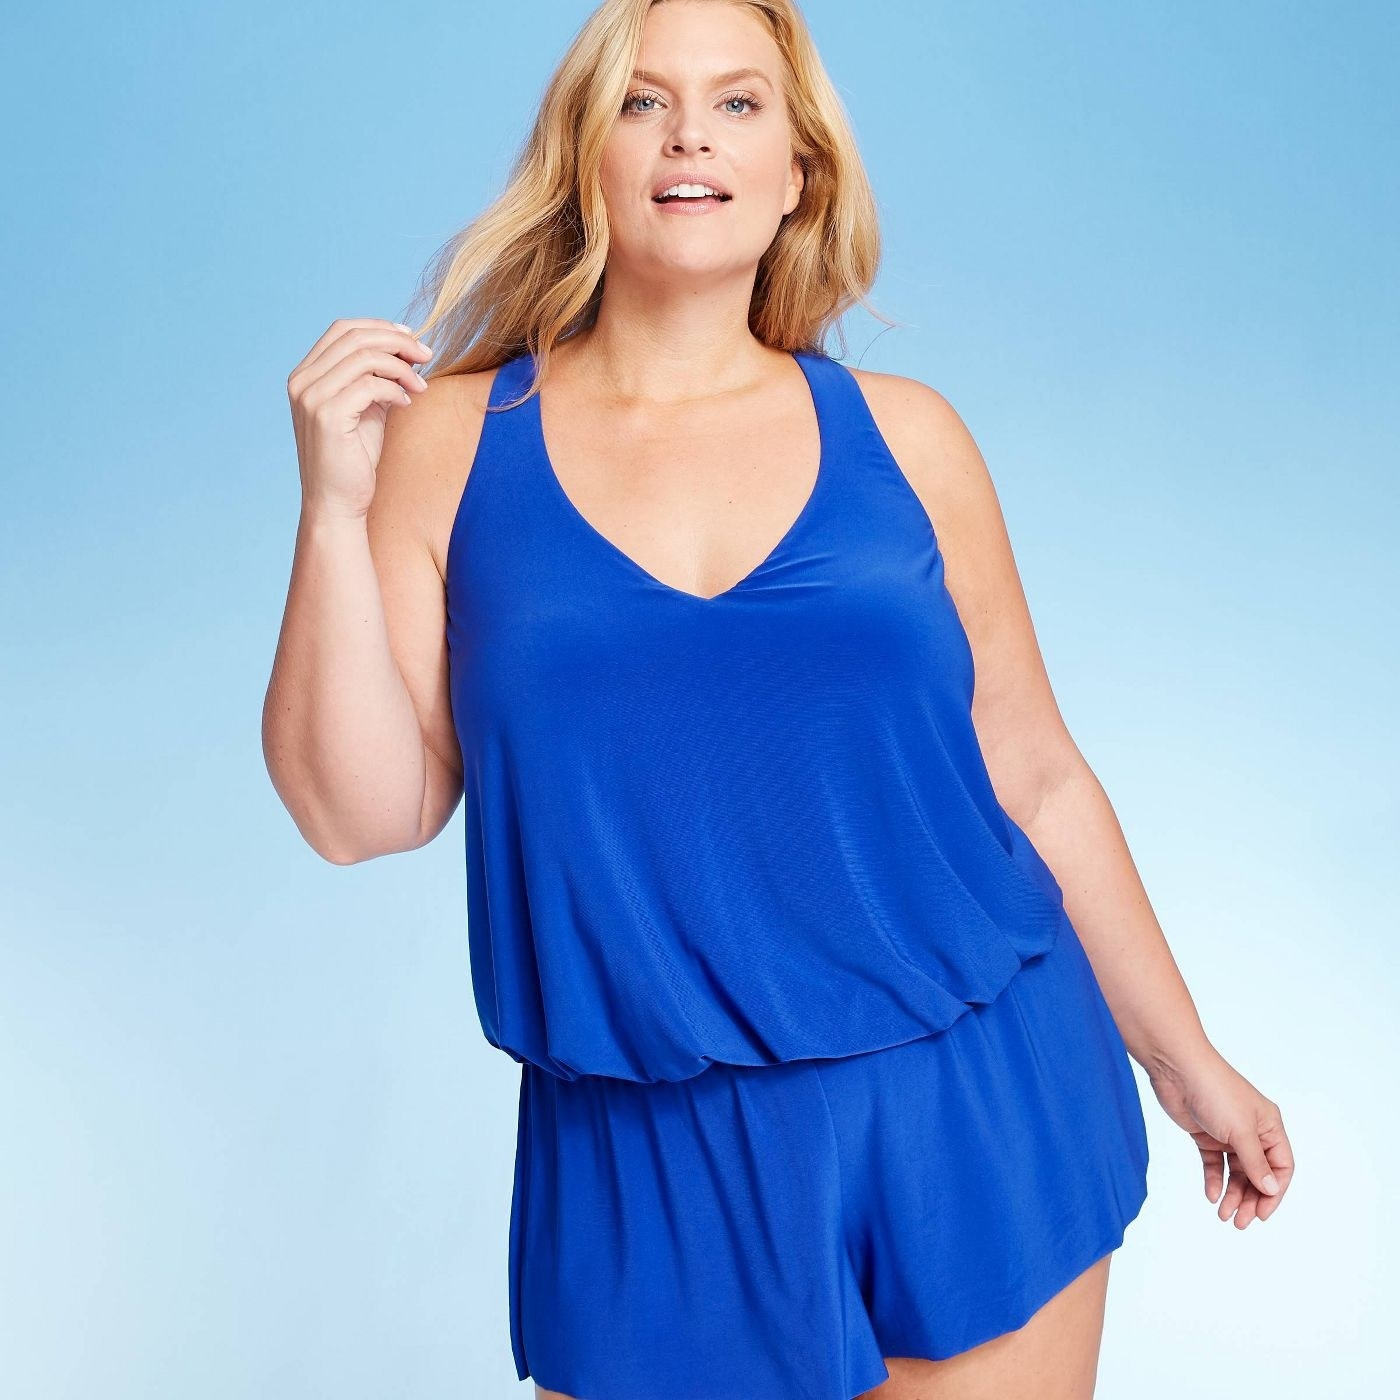 A blue swim romper with a v neck cinched slightly below the waist